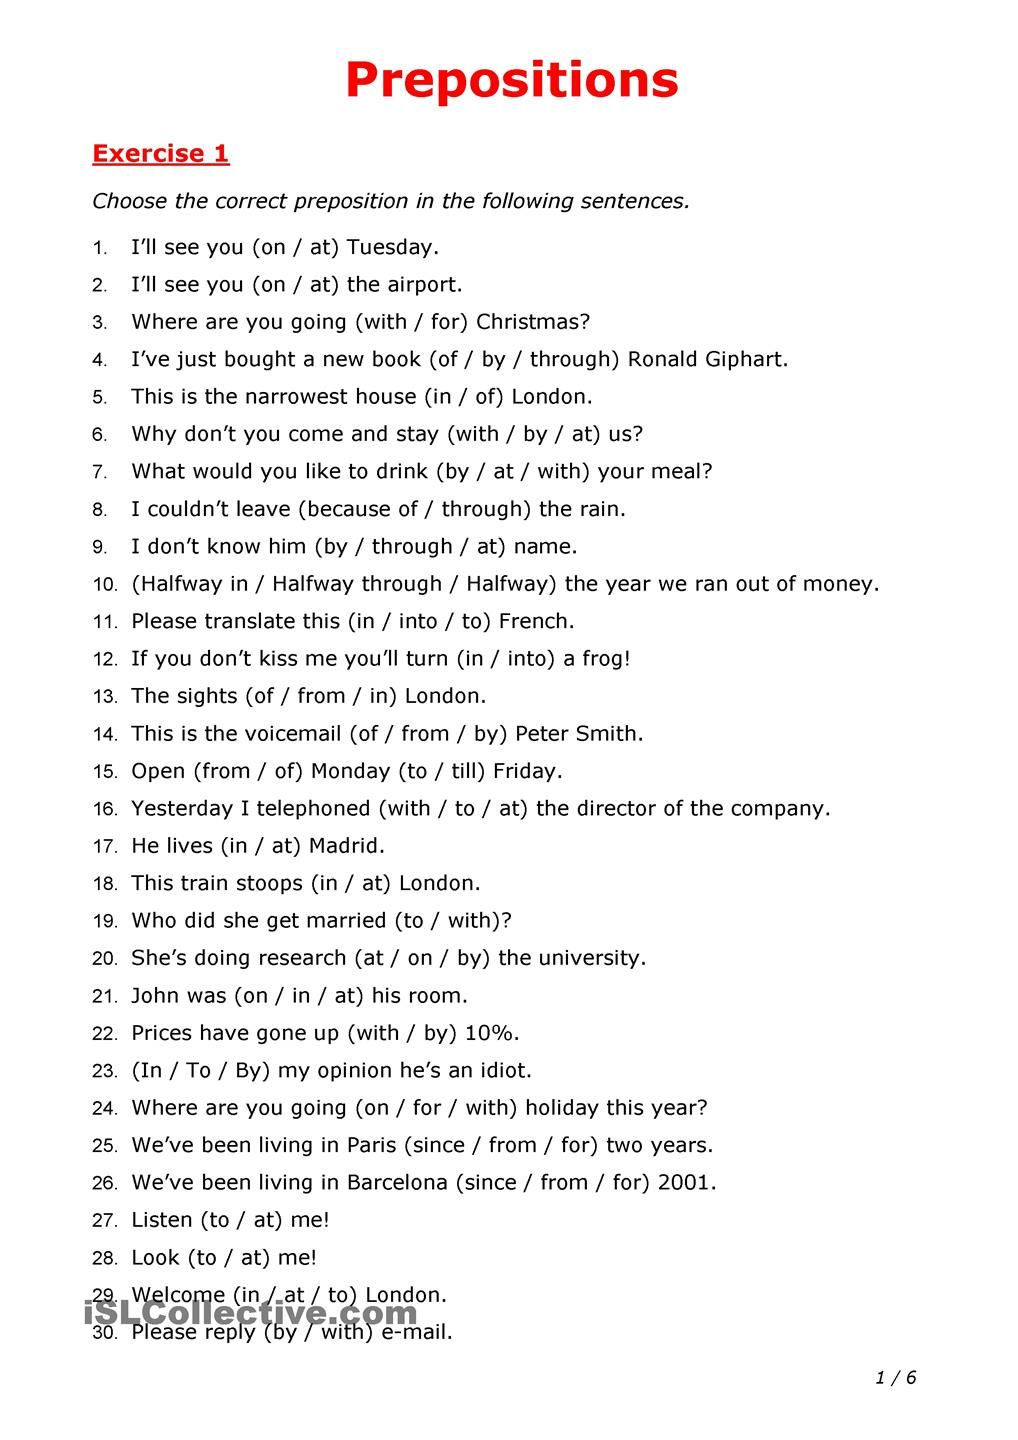 Prepositions Worksheets Middle School Prepositions In 2020